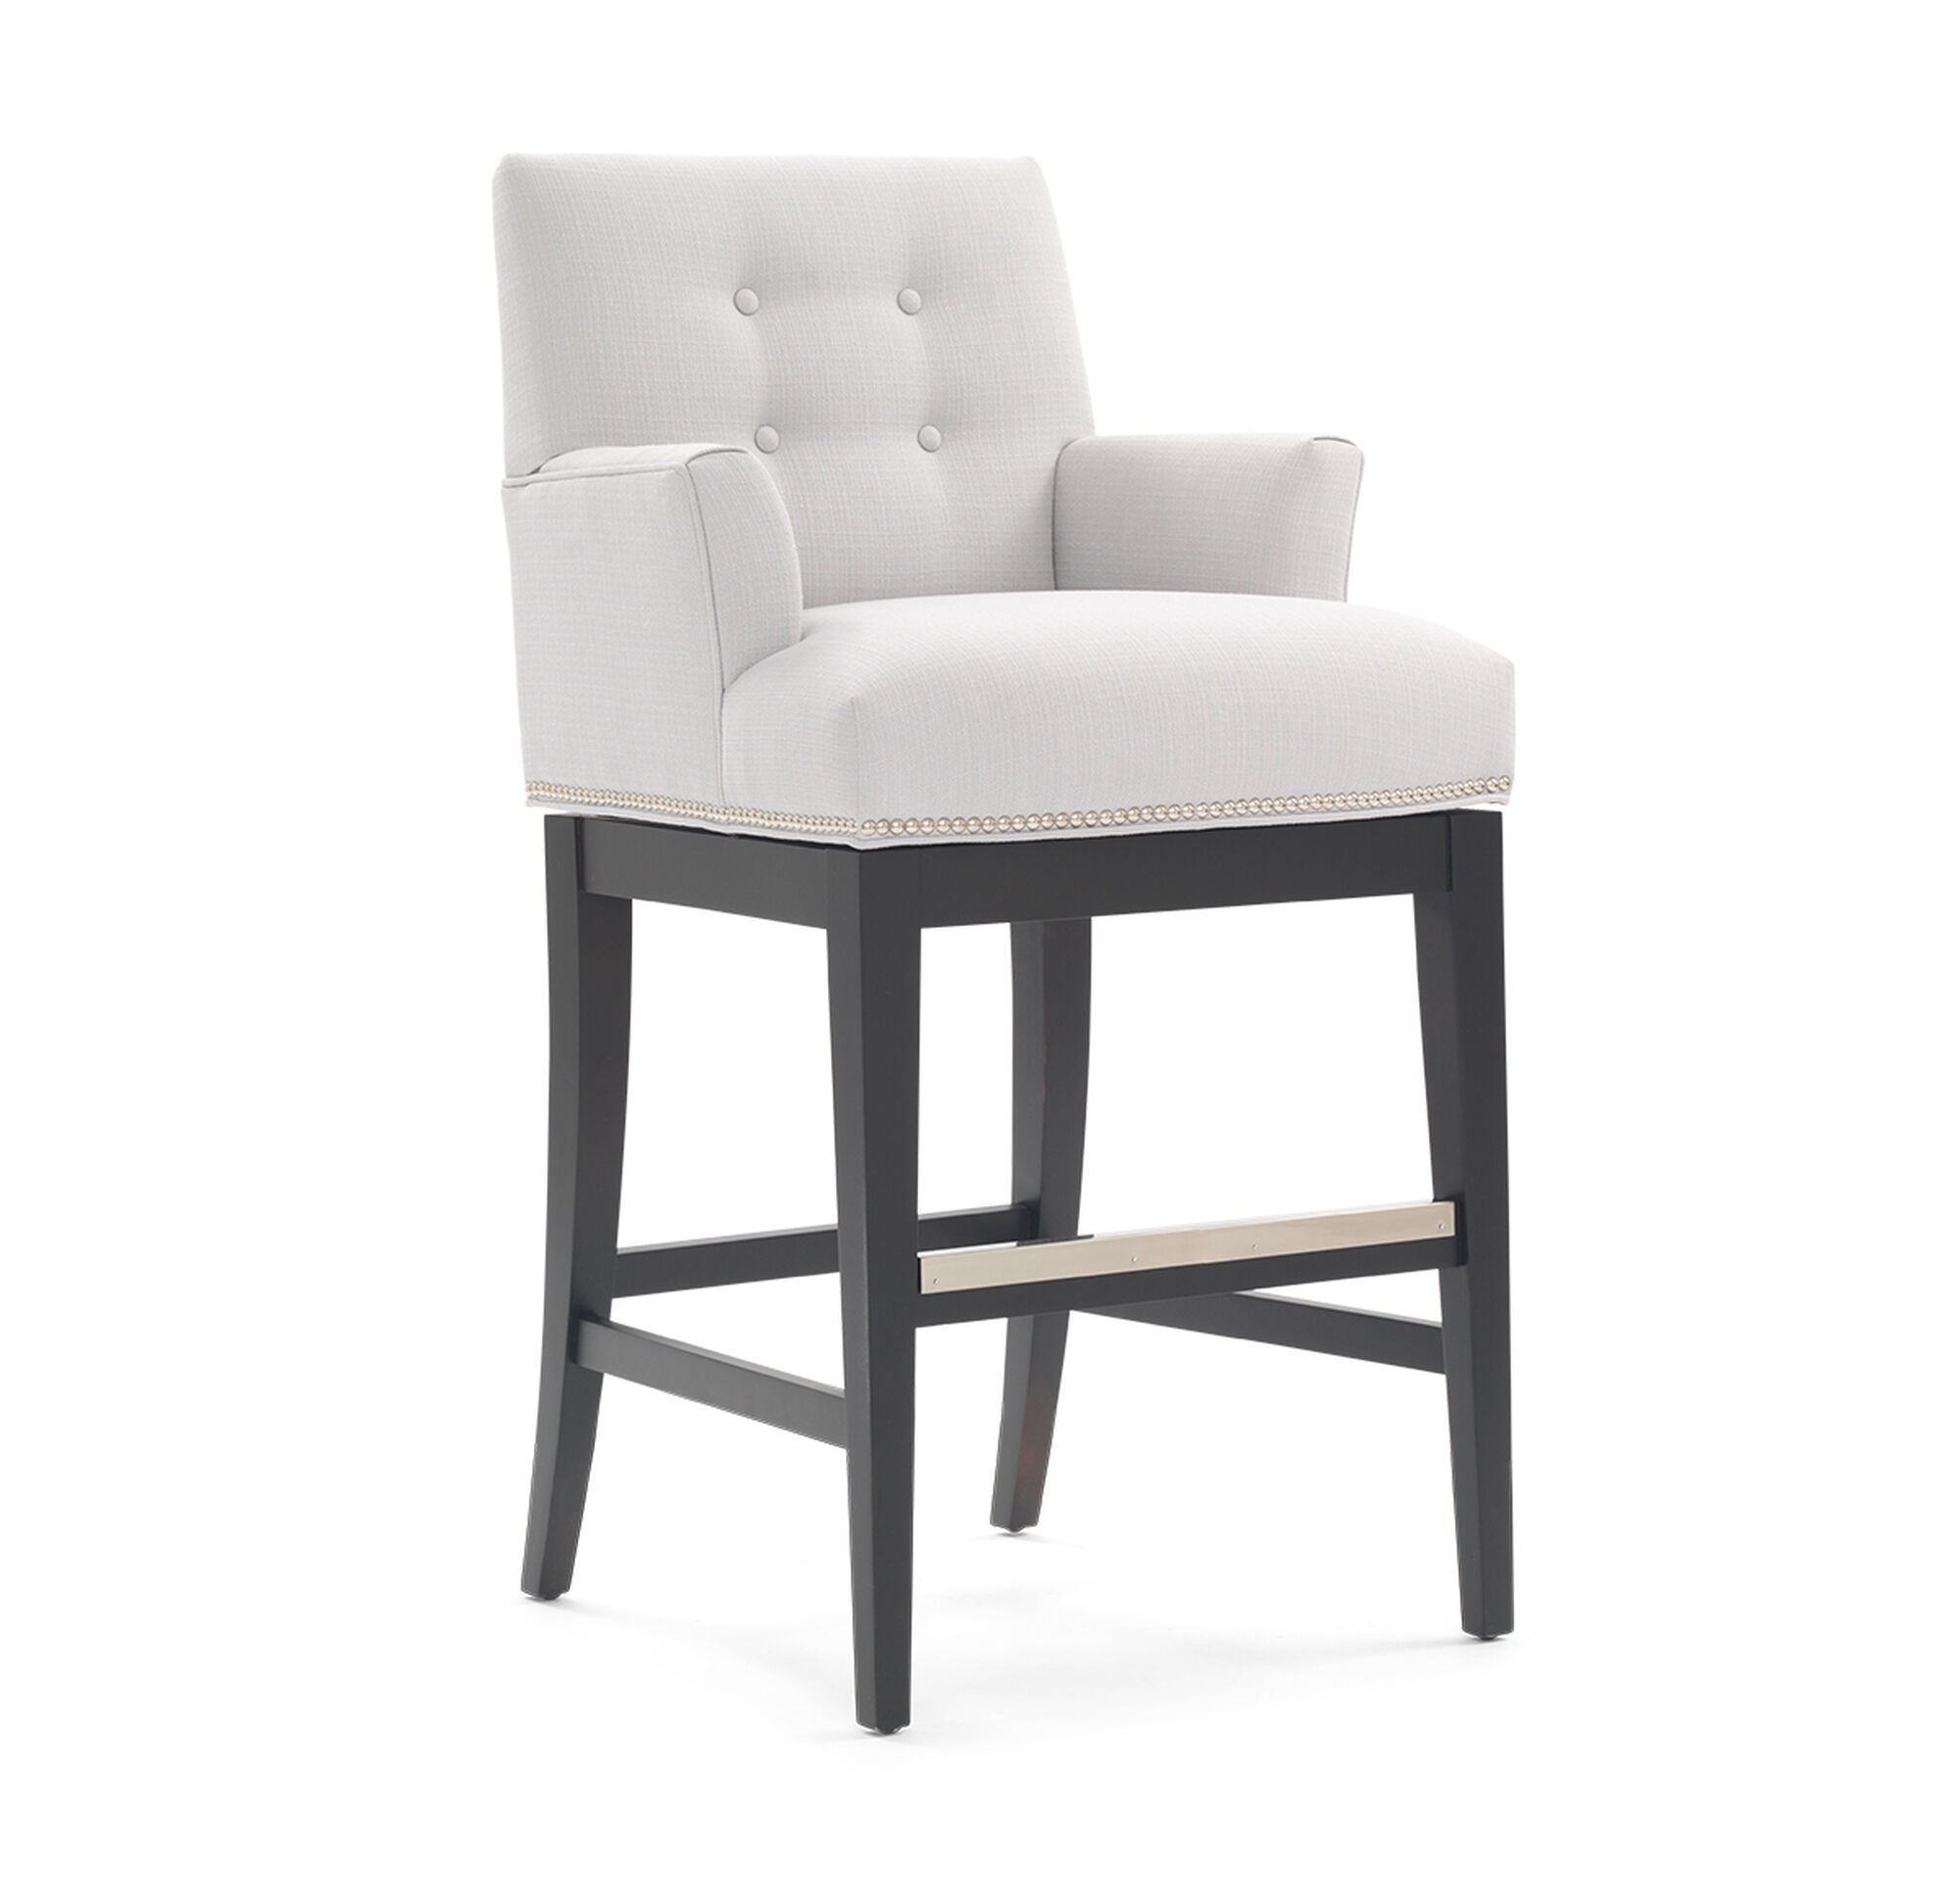 Oliver Return Swivel Bar Stool With Arms